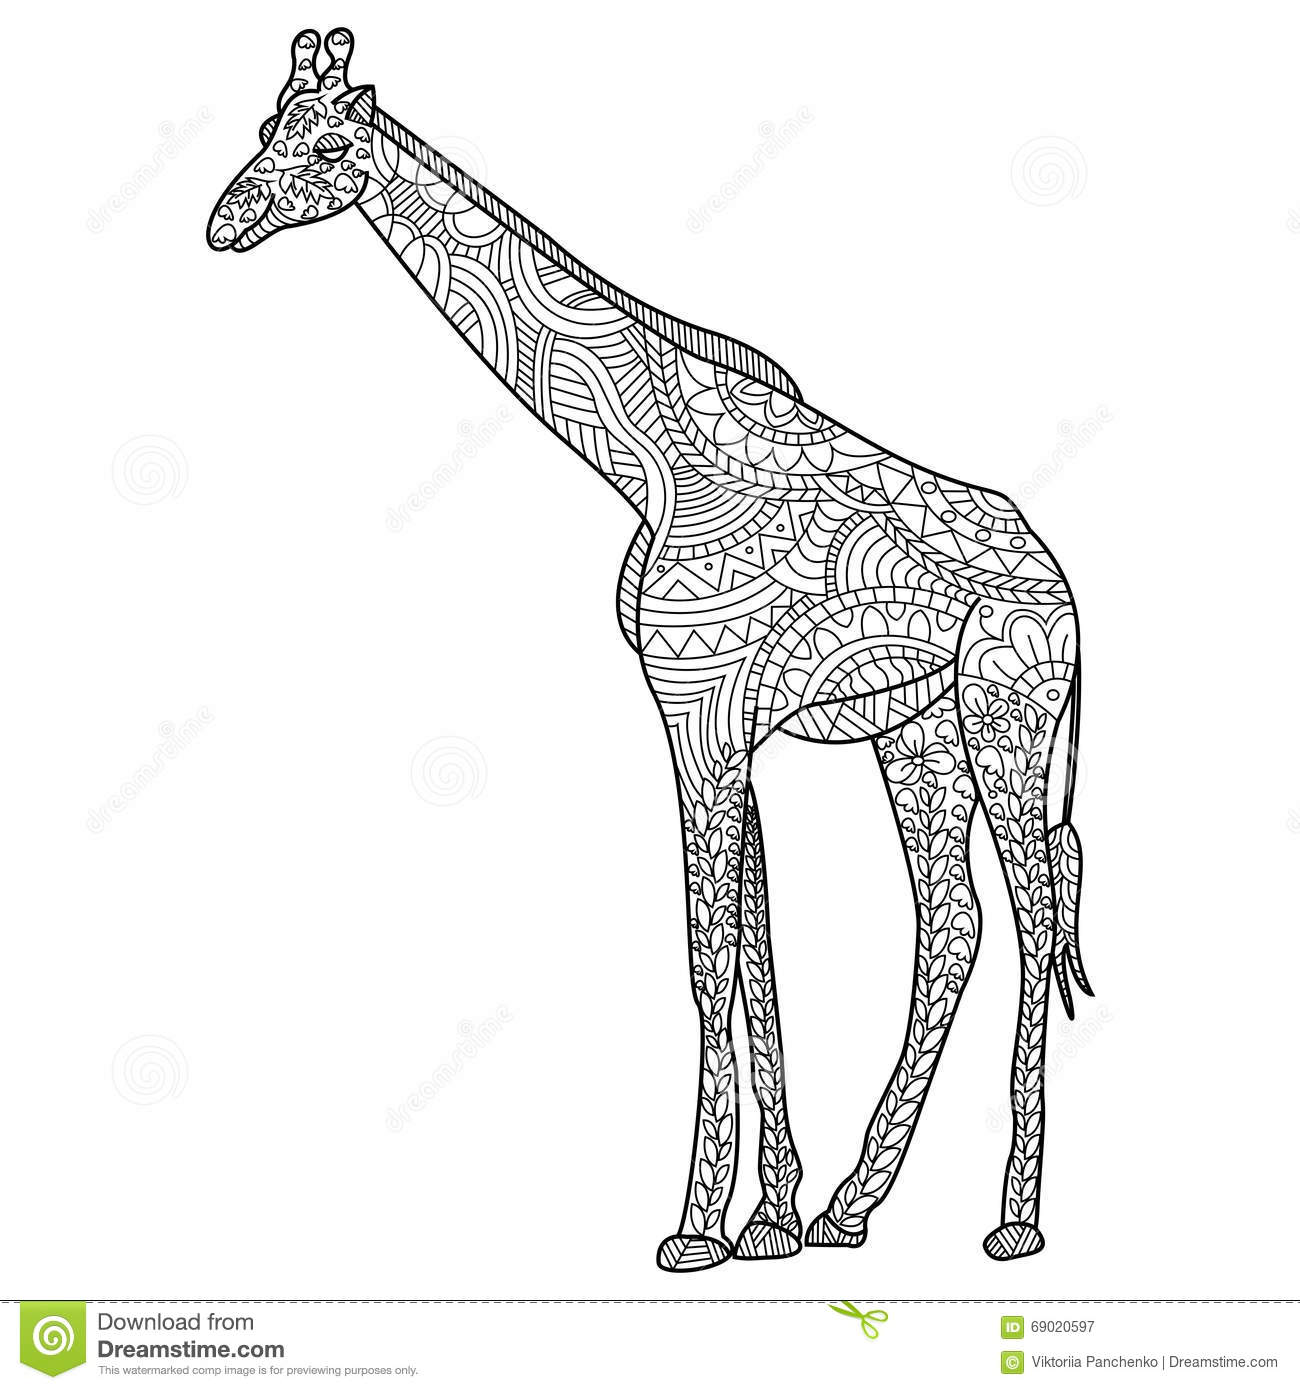 Giraffe Coloring Vector For Adults Stock Vector Illustration of